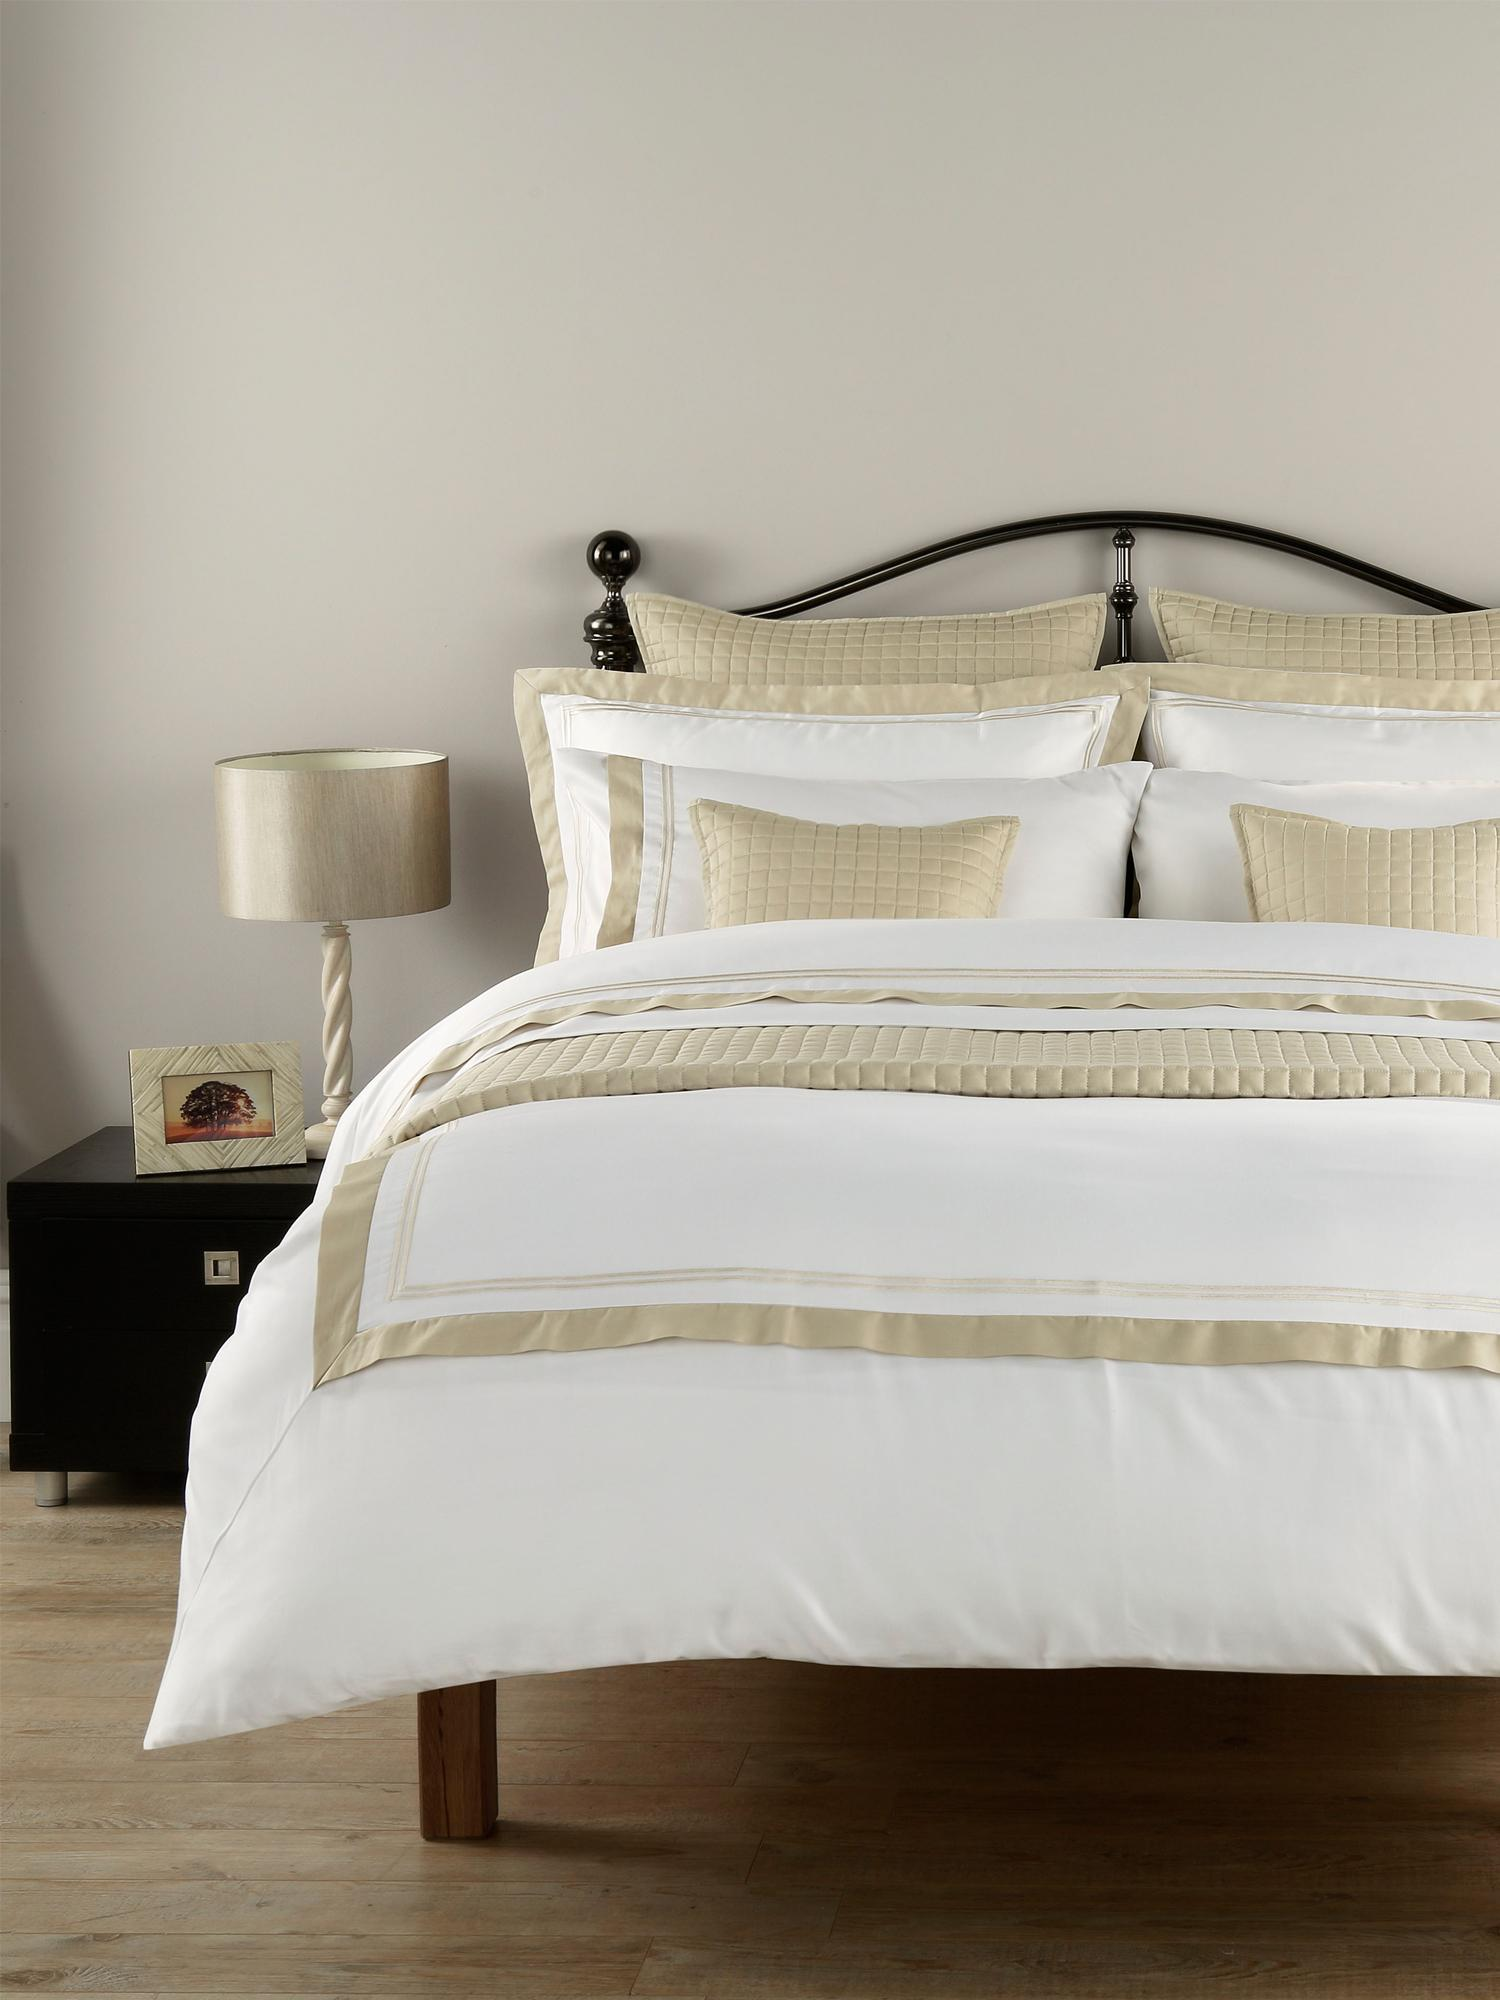 Bed Linen Sets Sale at House of Fraser